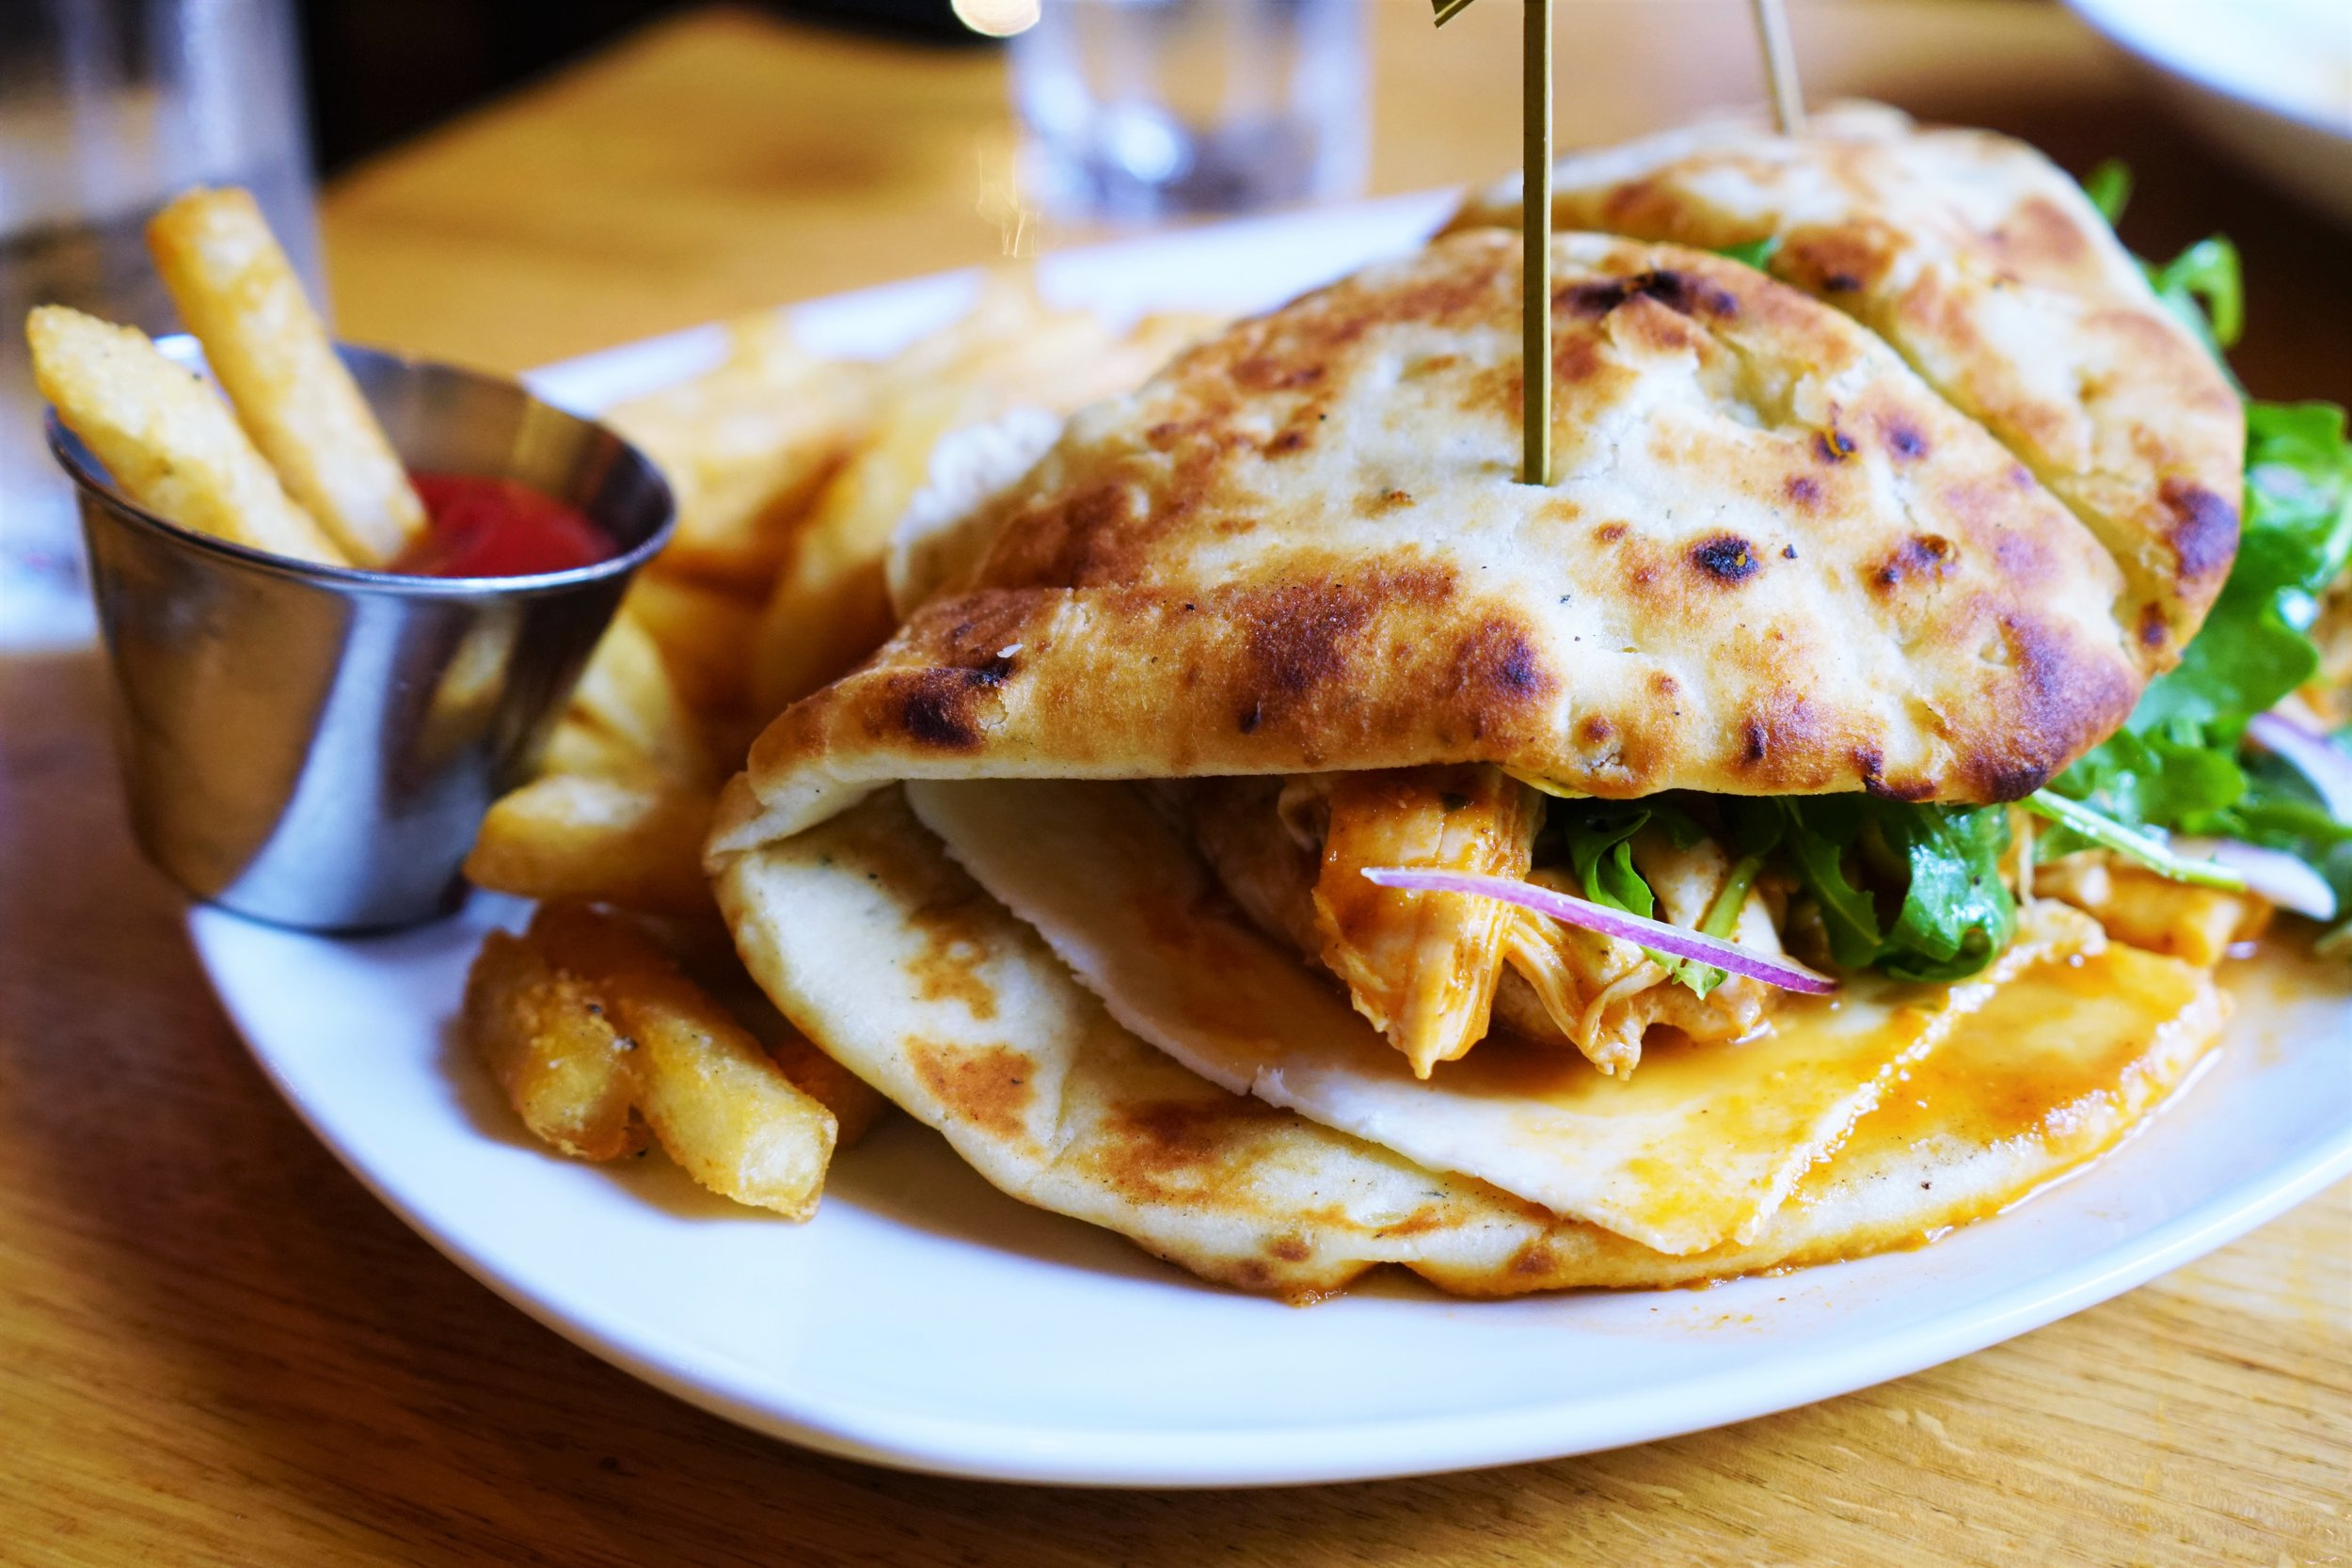 Chicken Tikka Sandwich with Masala Sauce, Red Onion, Arugula, Paneer, Garlic Naan, and Fries at Tip Tap Room in Boston